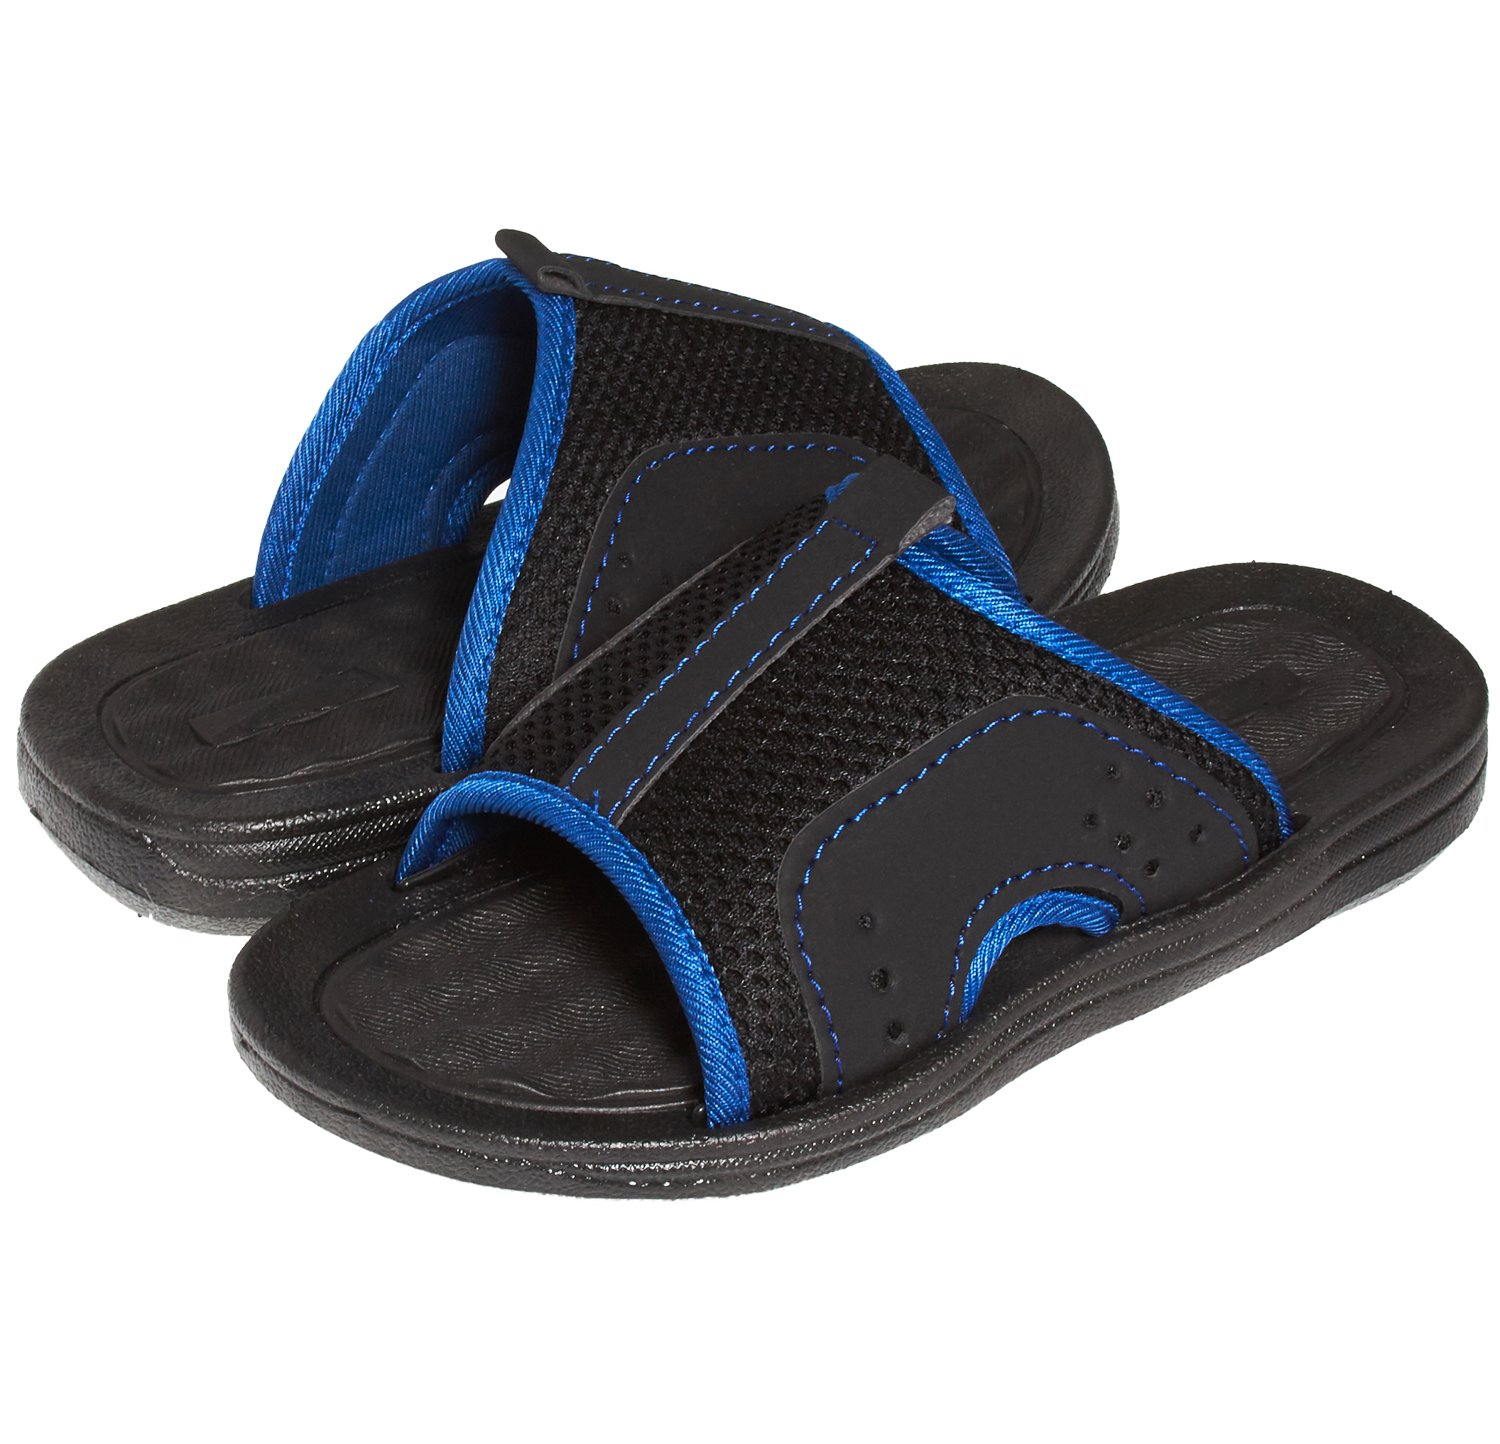 Skysole Boys Open Toe Rugged Mesh Slides Sandals Grey/Blue 4/5 US Big Kid by Skysole (Image #1)